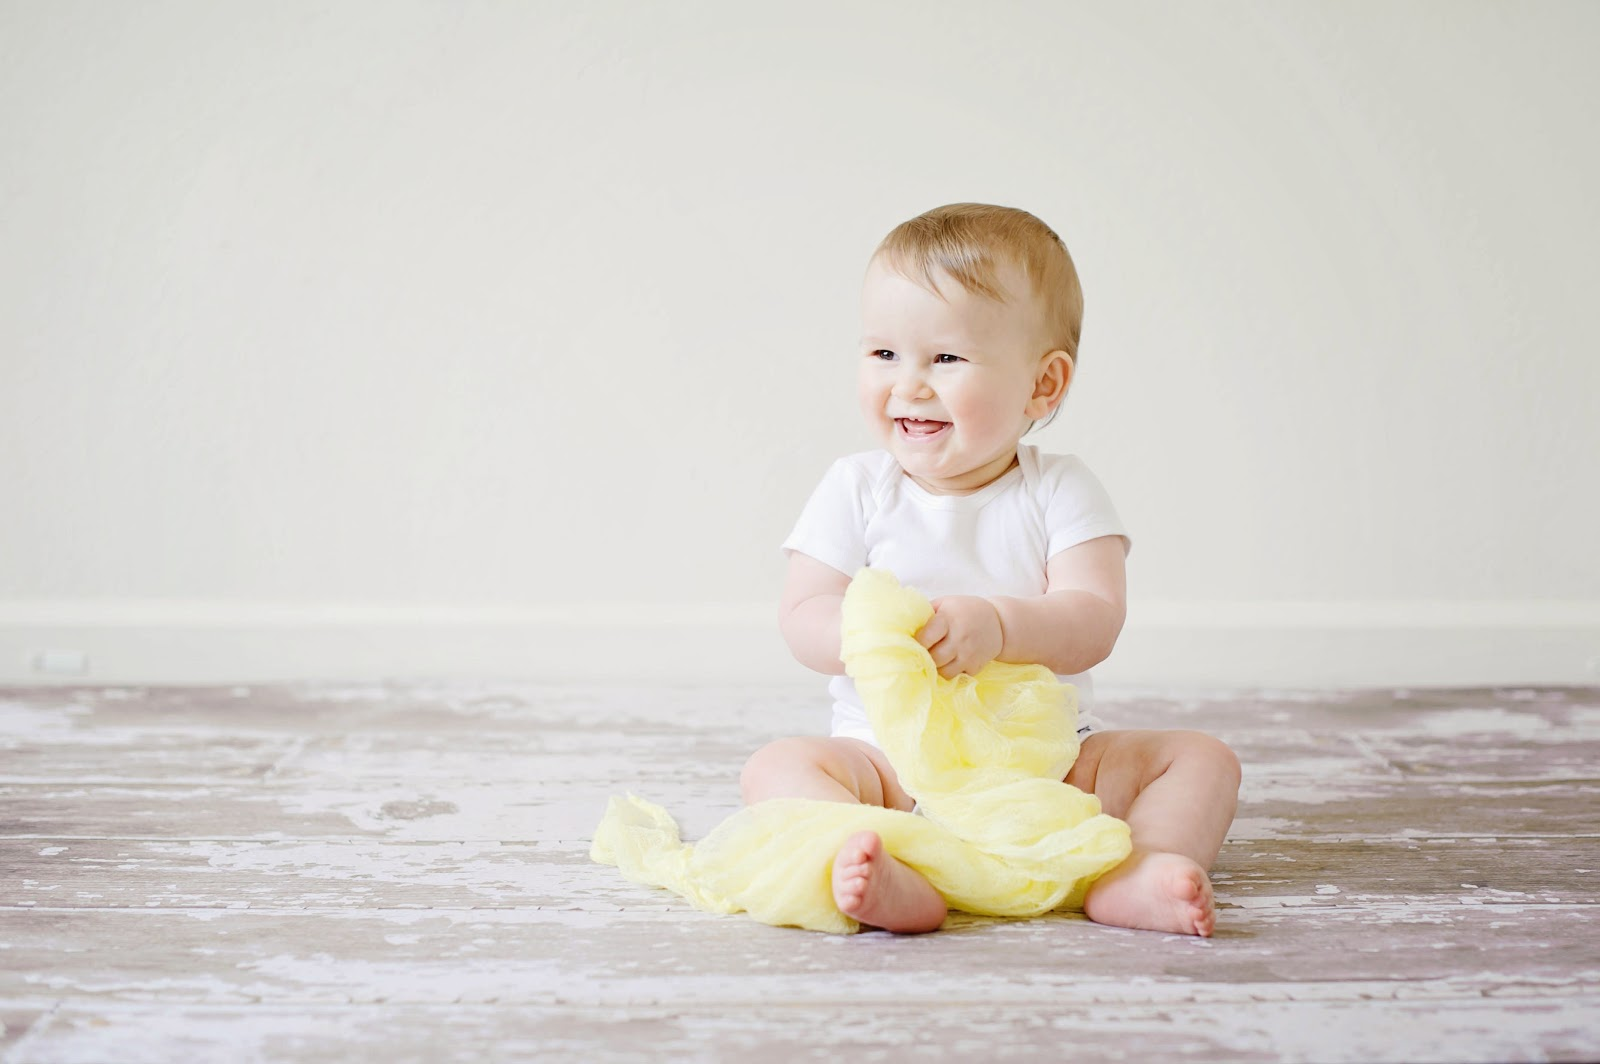 adorable-baby-cheerful-child-images